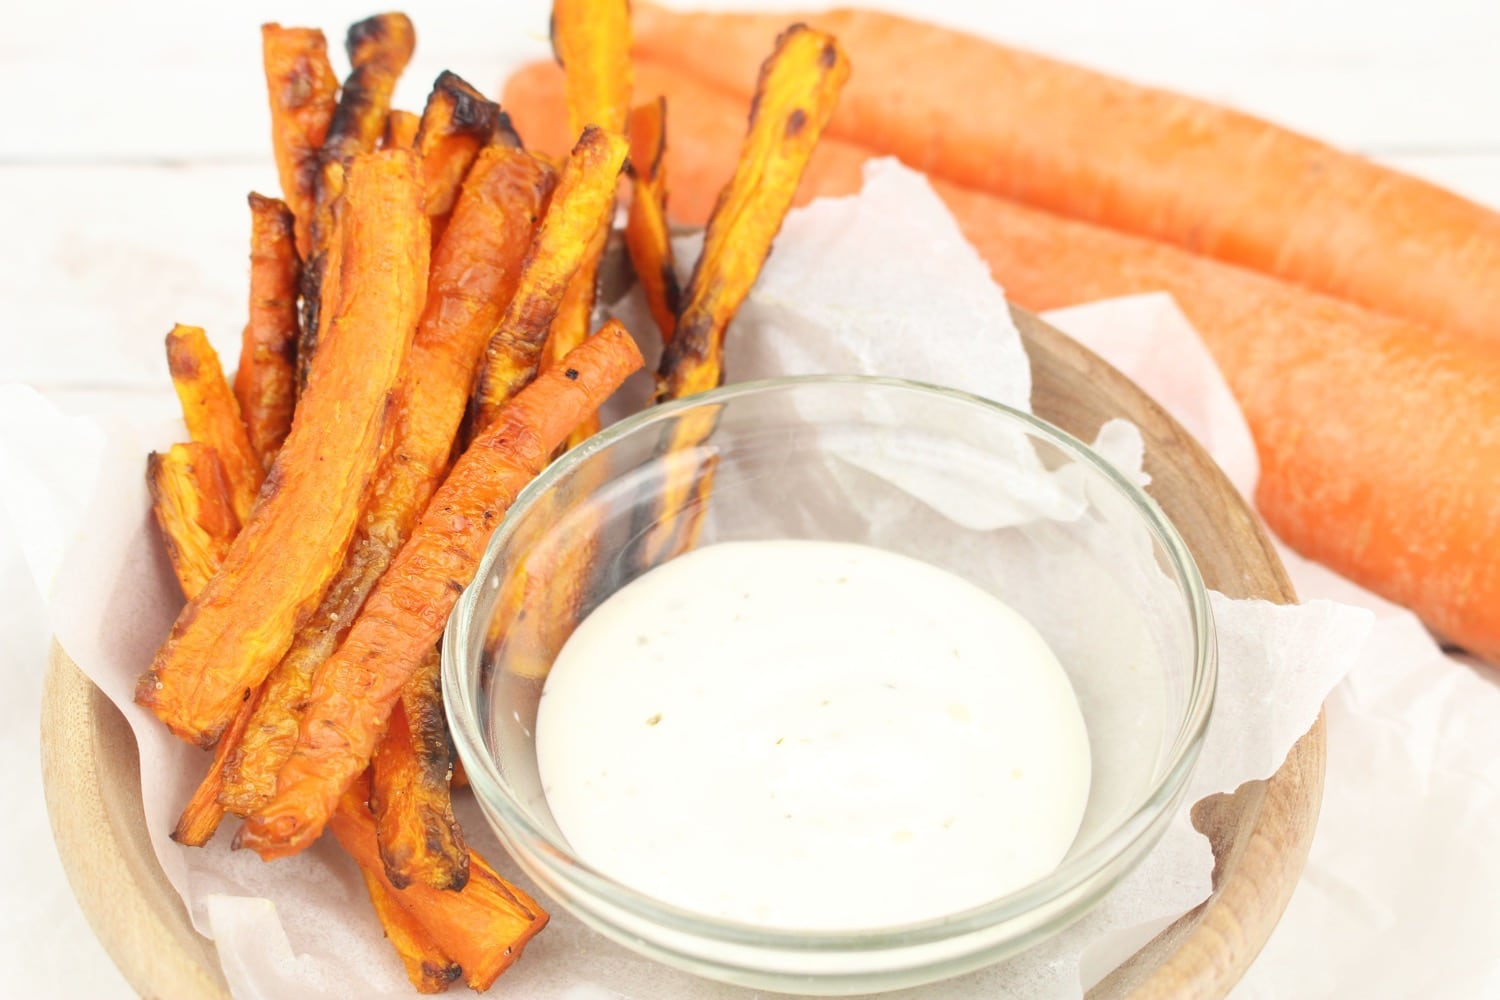 homemade carrot fries